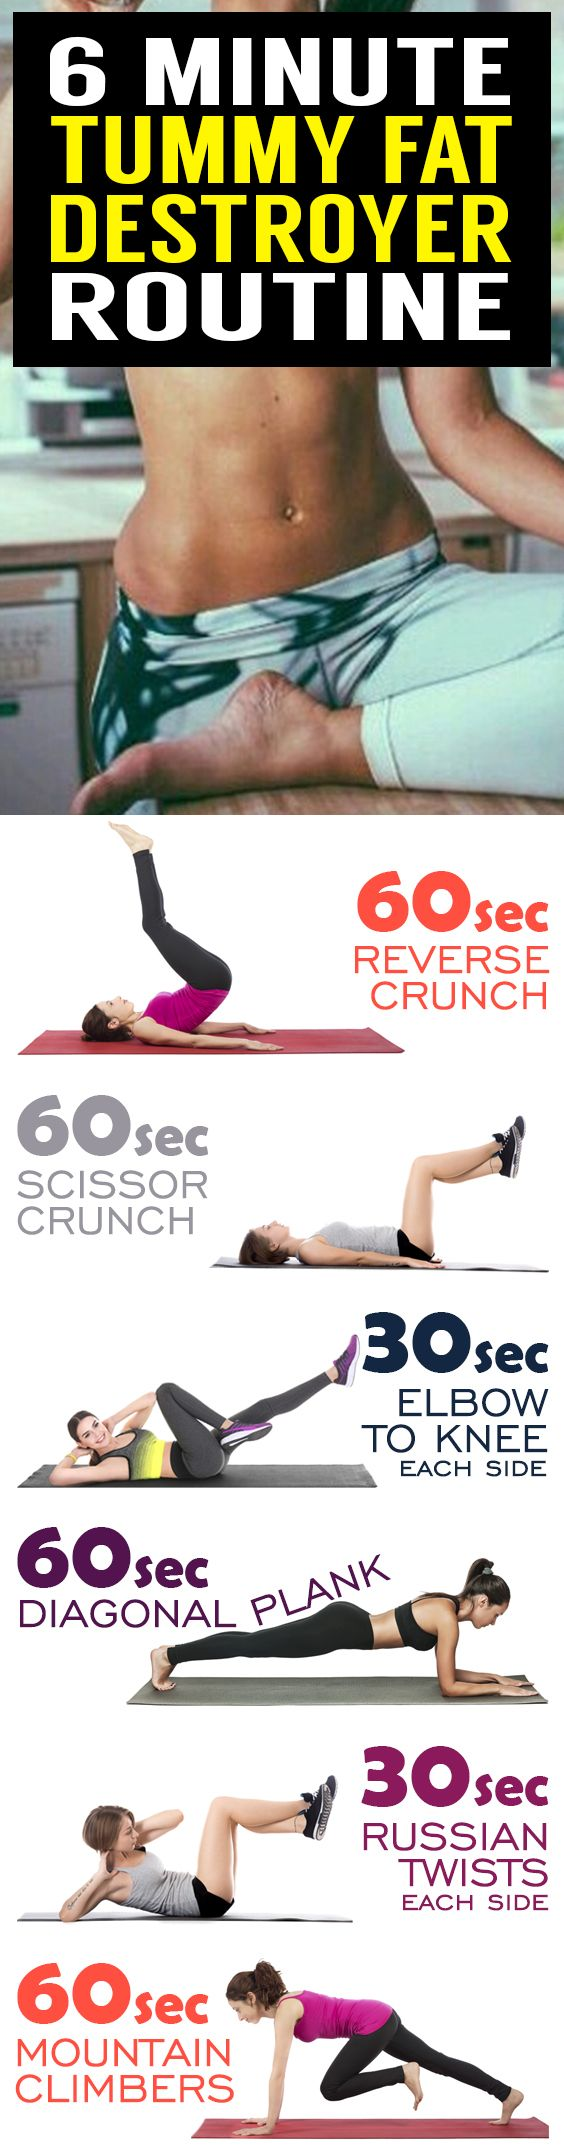 Summer's here and the heat is on to tighten up your tummy for the pool or beach. If you want your belly to be bikini-ready fast you need exercises that engage all your abdominal muscles. This killer tummy-cinching routine works magic on muffin tops and th http://healthyquickly.com